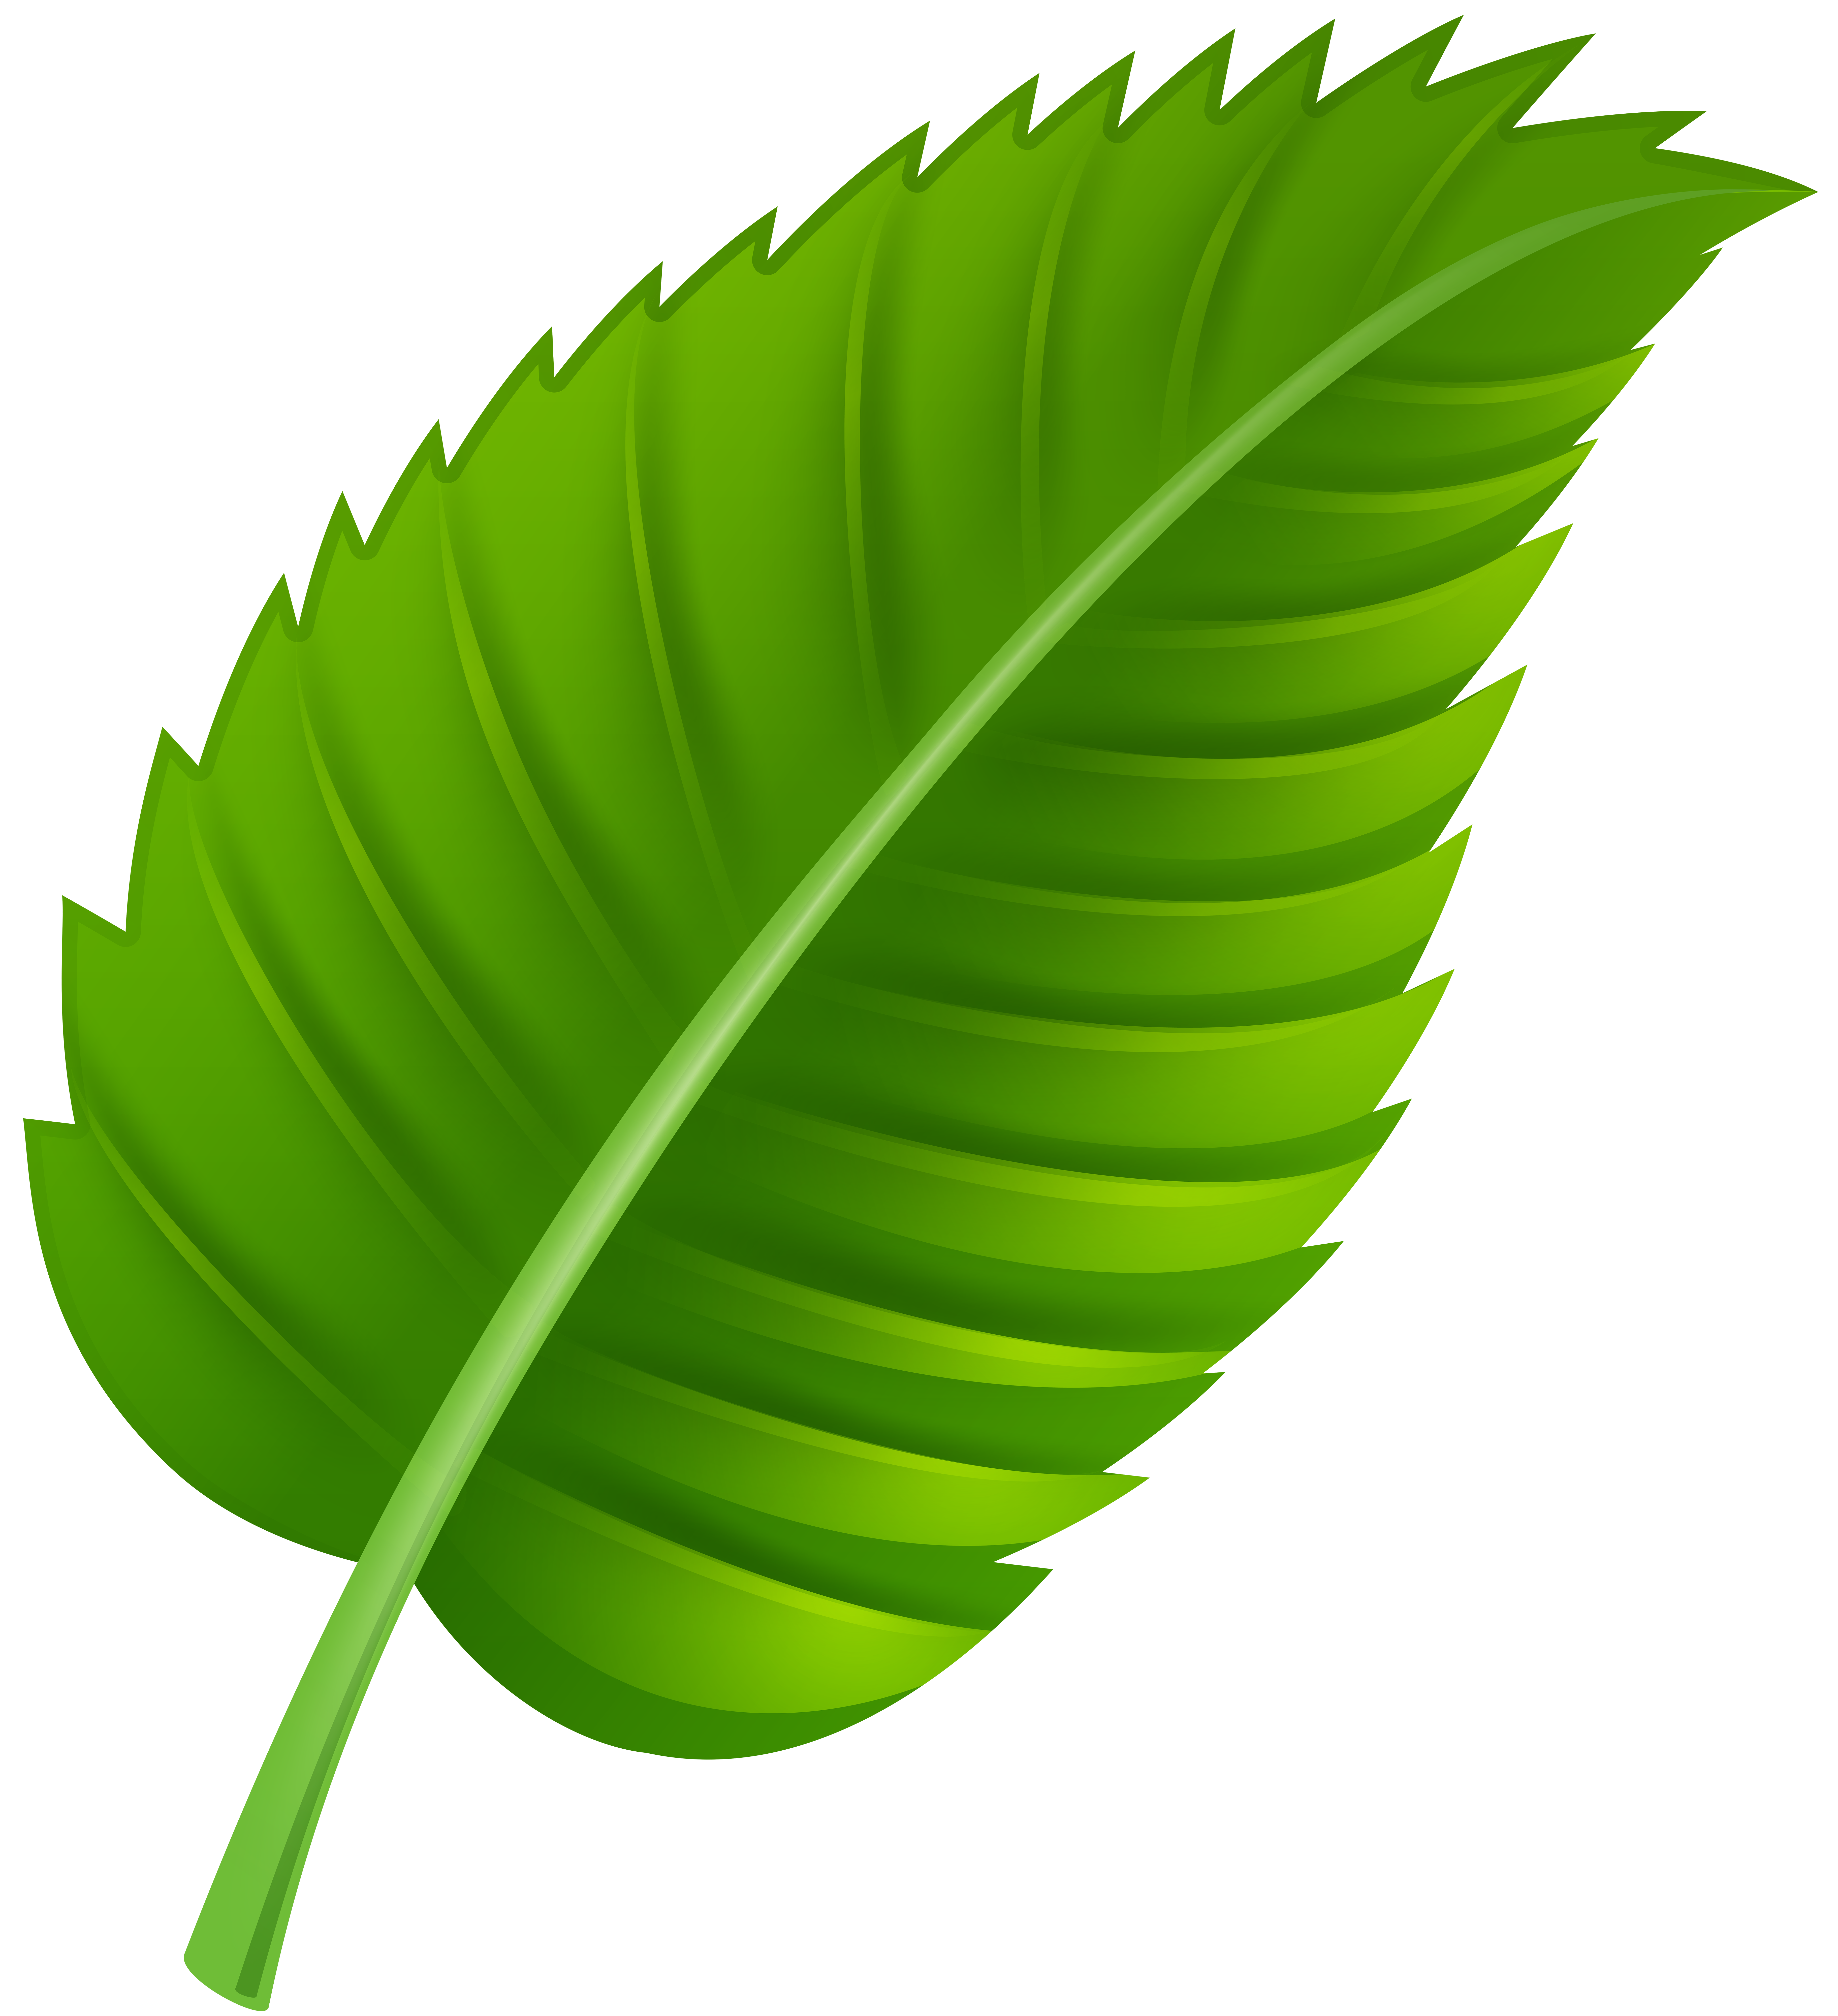 Green leaf png clip. Clipart leaves